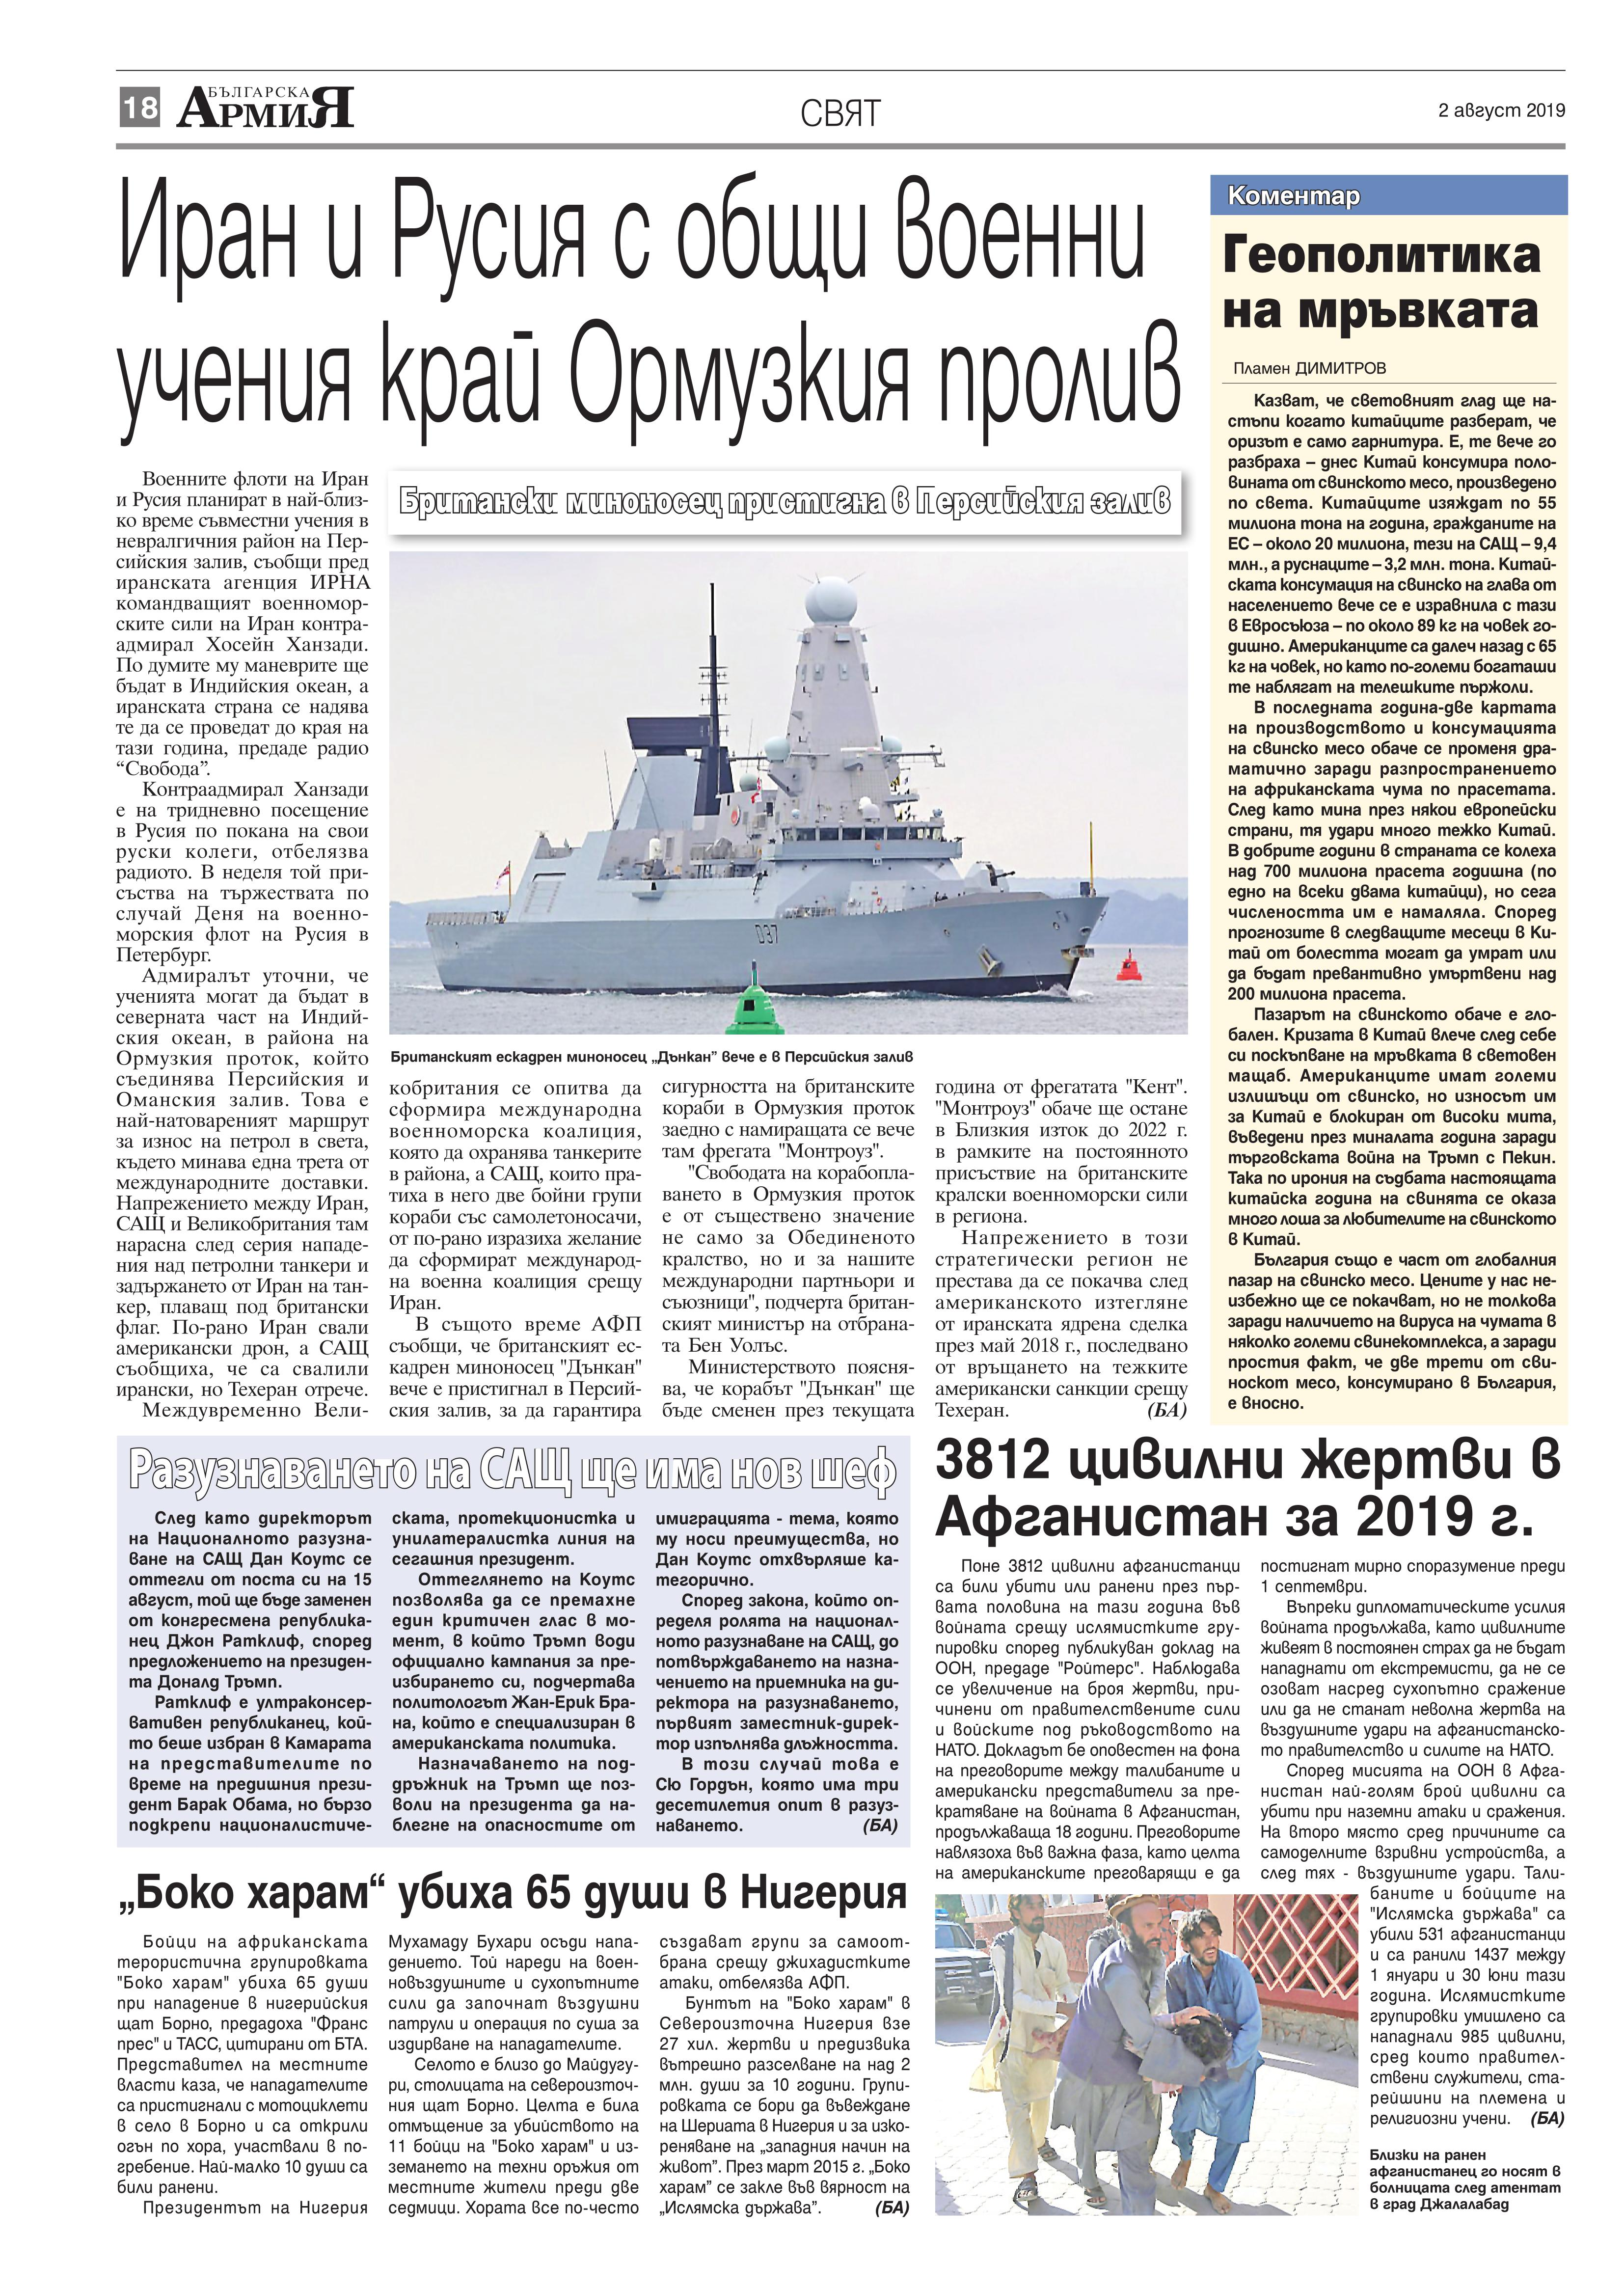 https://www.armymedia.bg/wp-content/uploads/2015/06/18.page1_-105.jpg